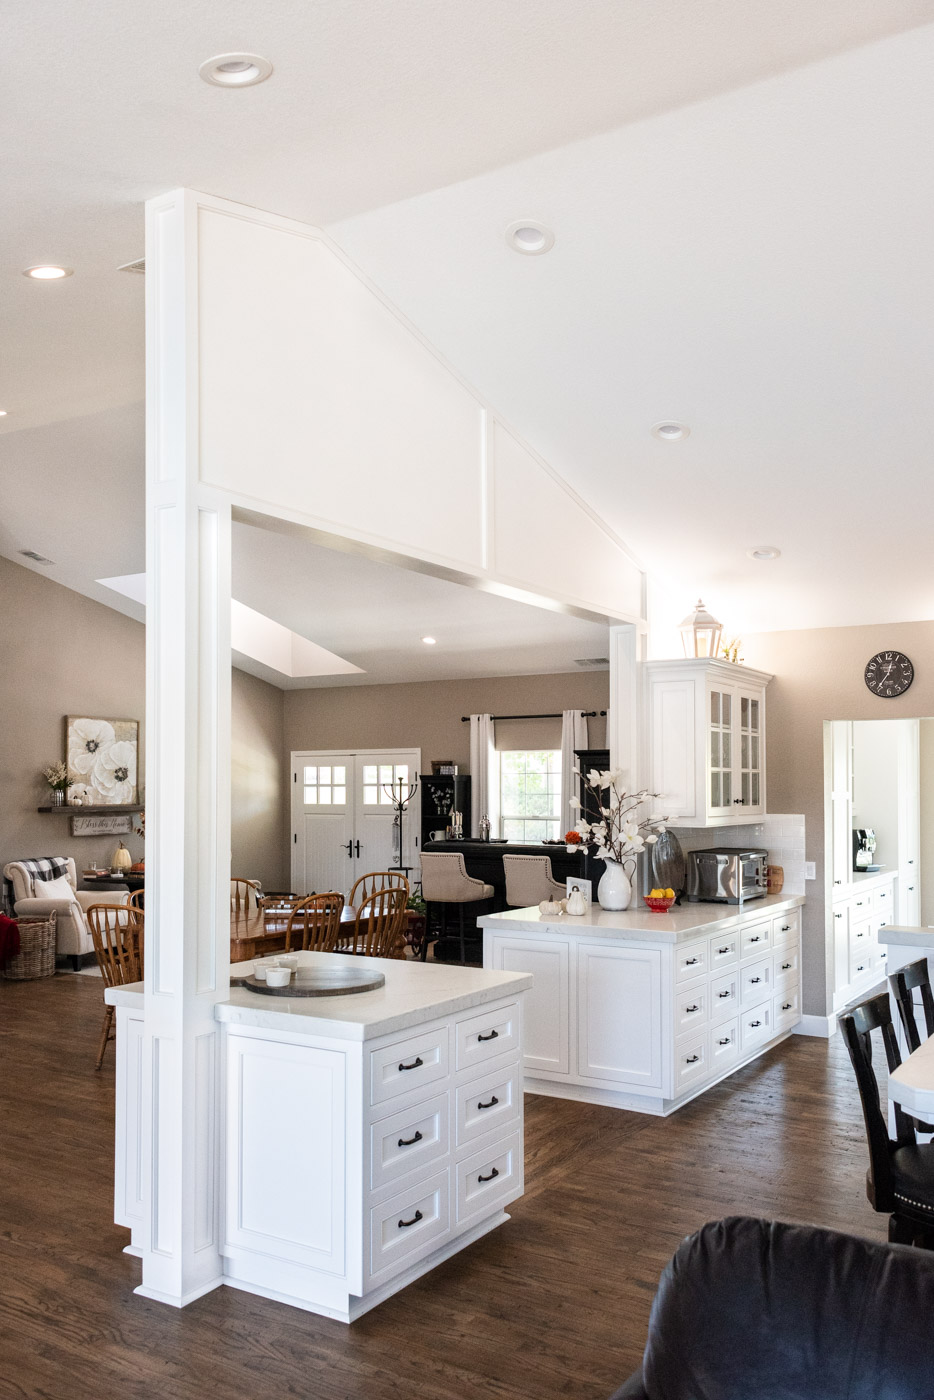 Transitional Country Cottage style kitchen with custom recessed panel painted column